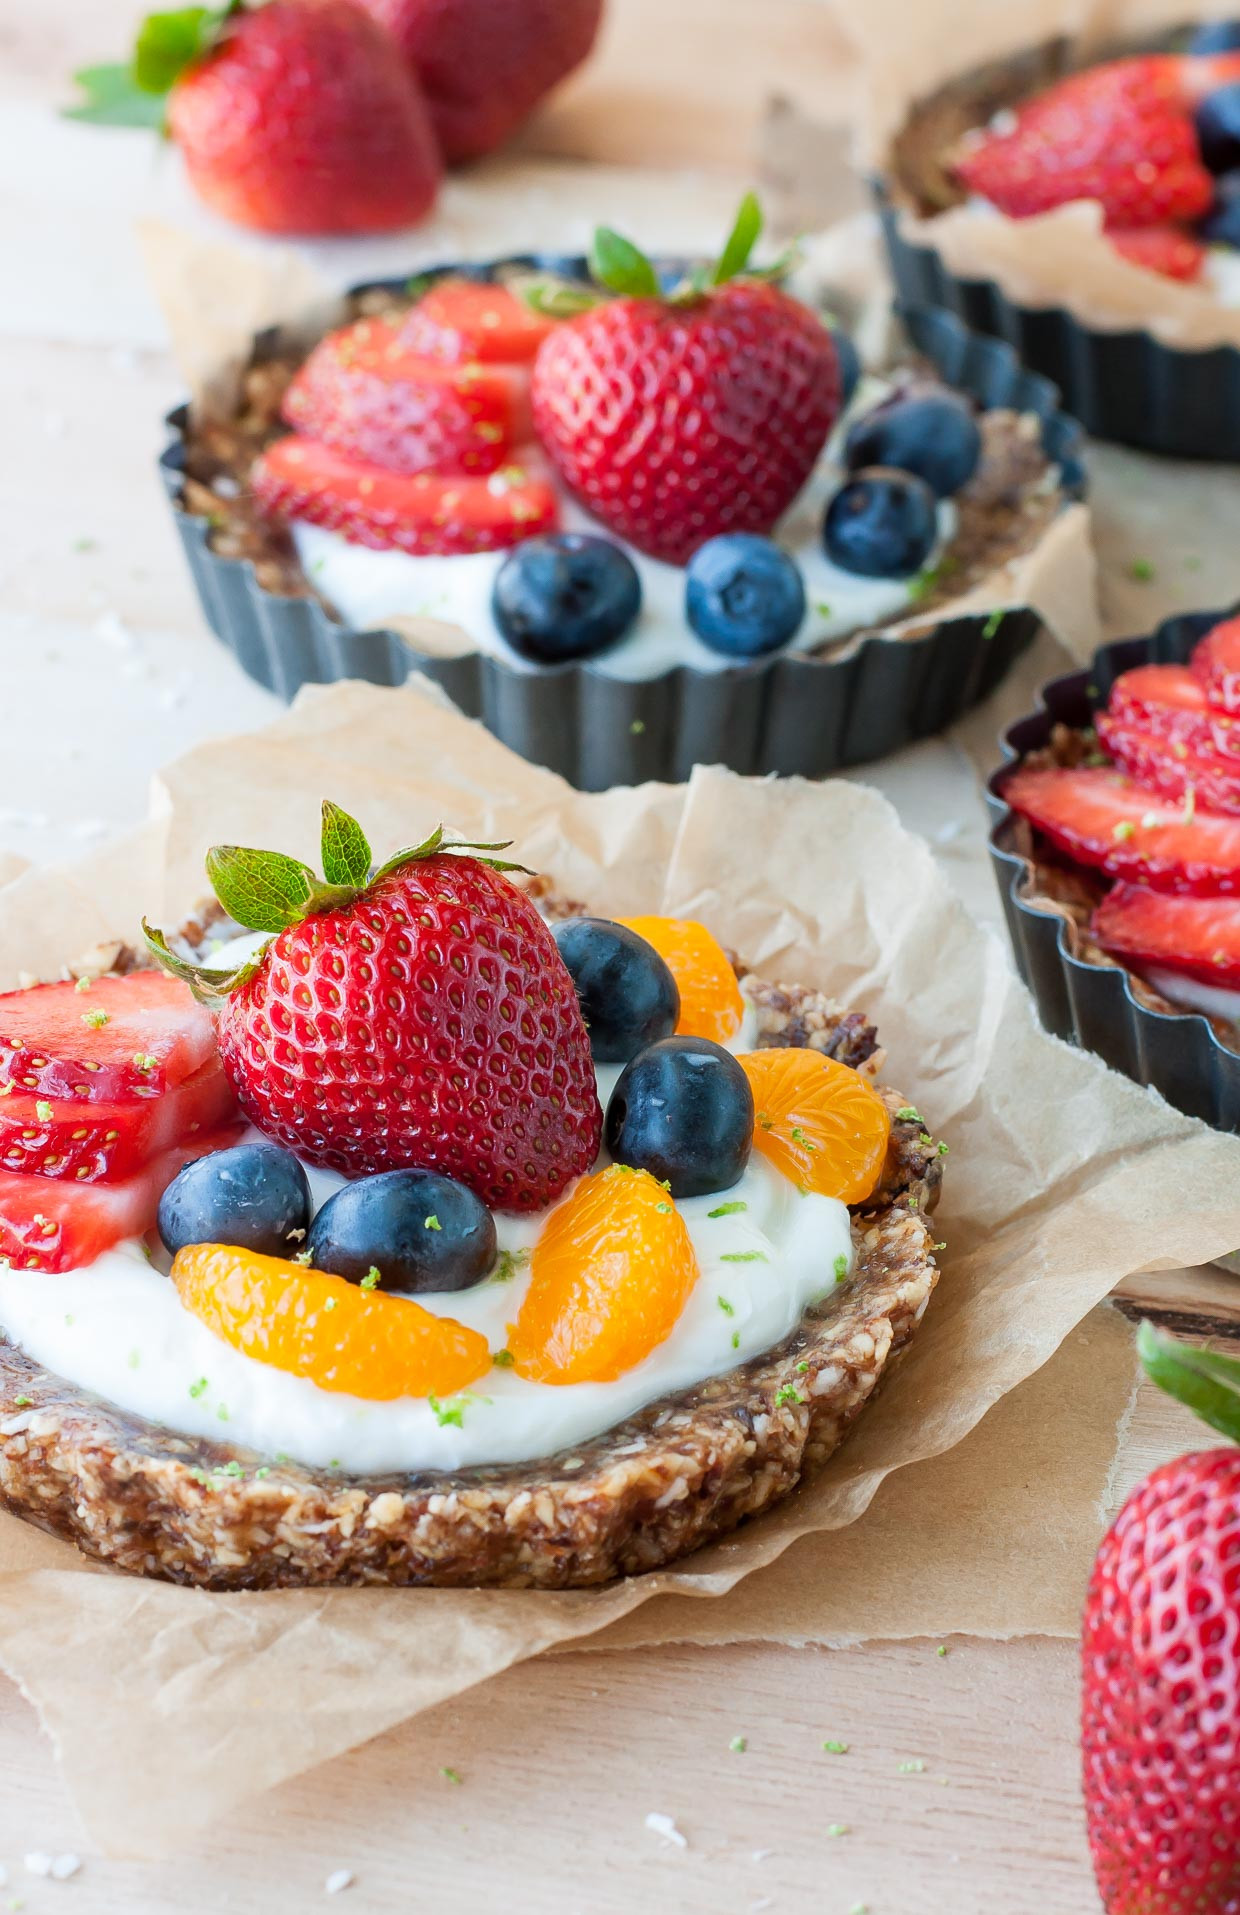 No Bake Healthy Desserts  Healthy No Bake Coconut Lime Tarts with Fruit and Yogurt